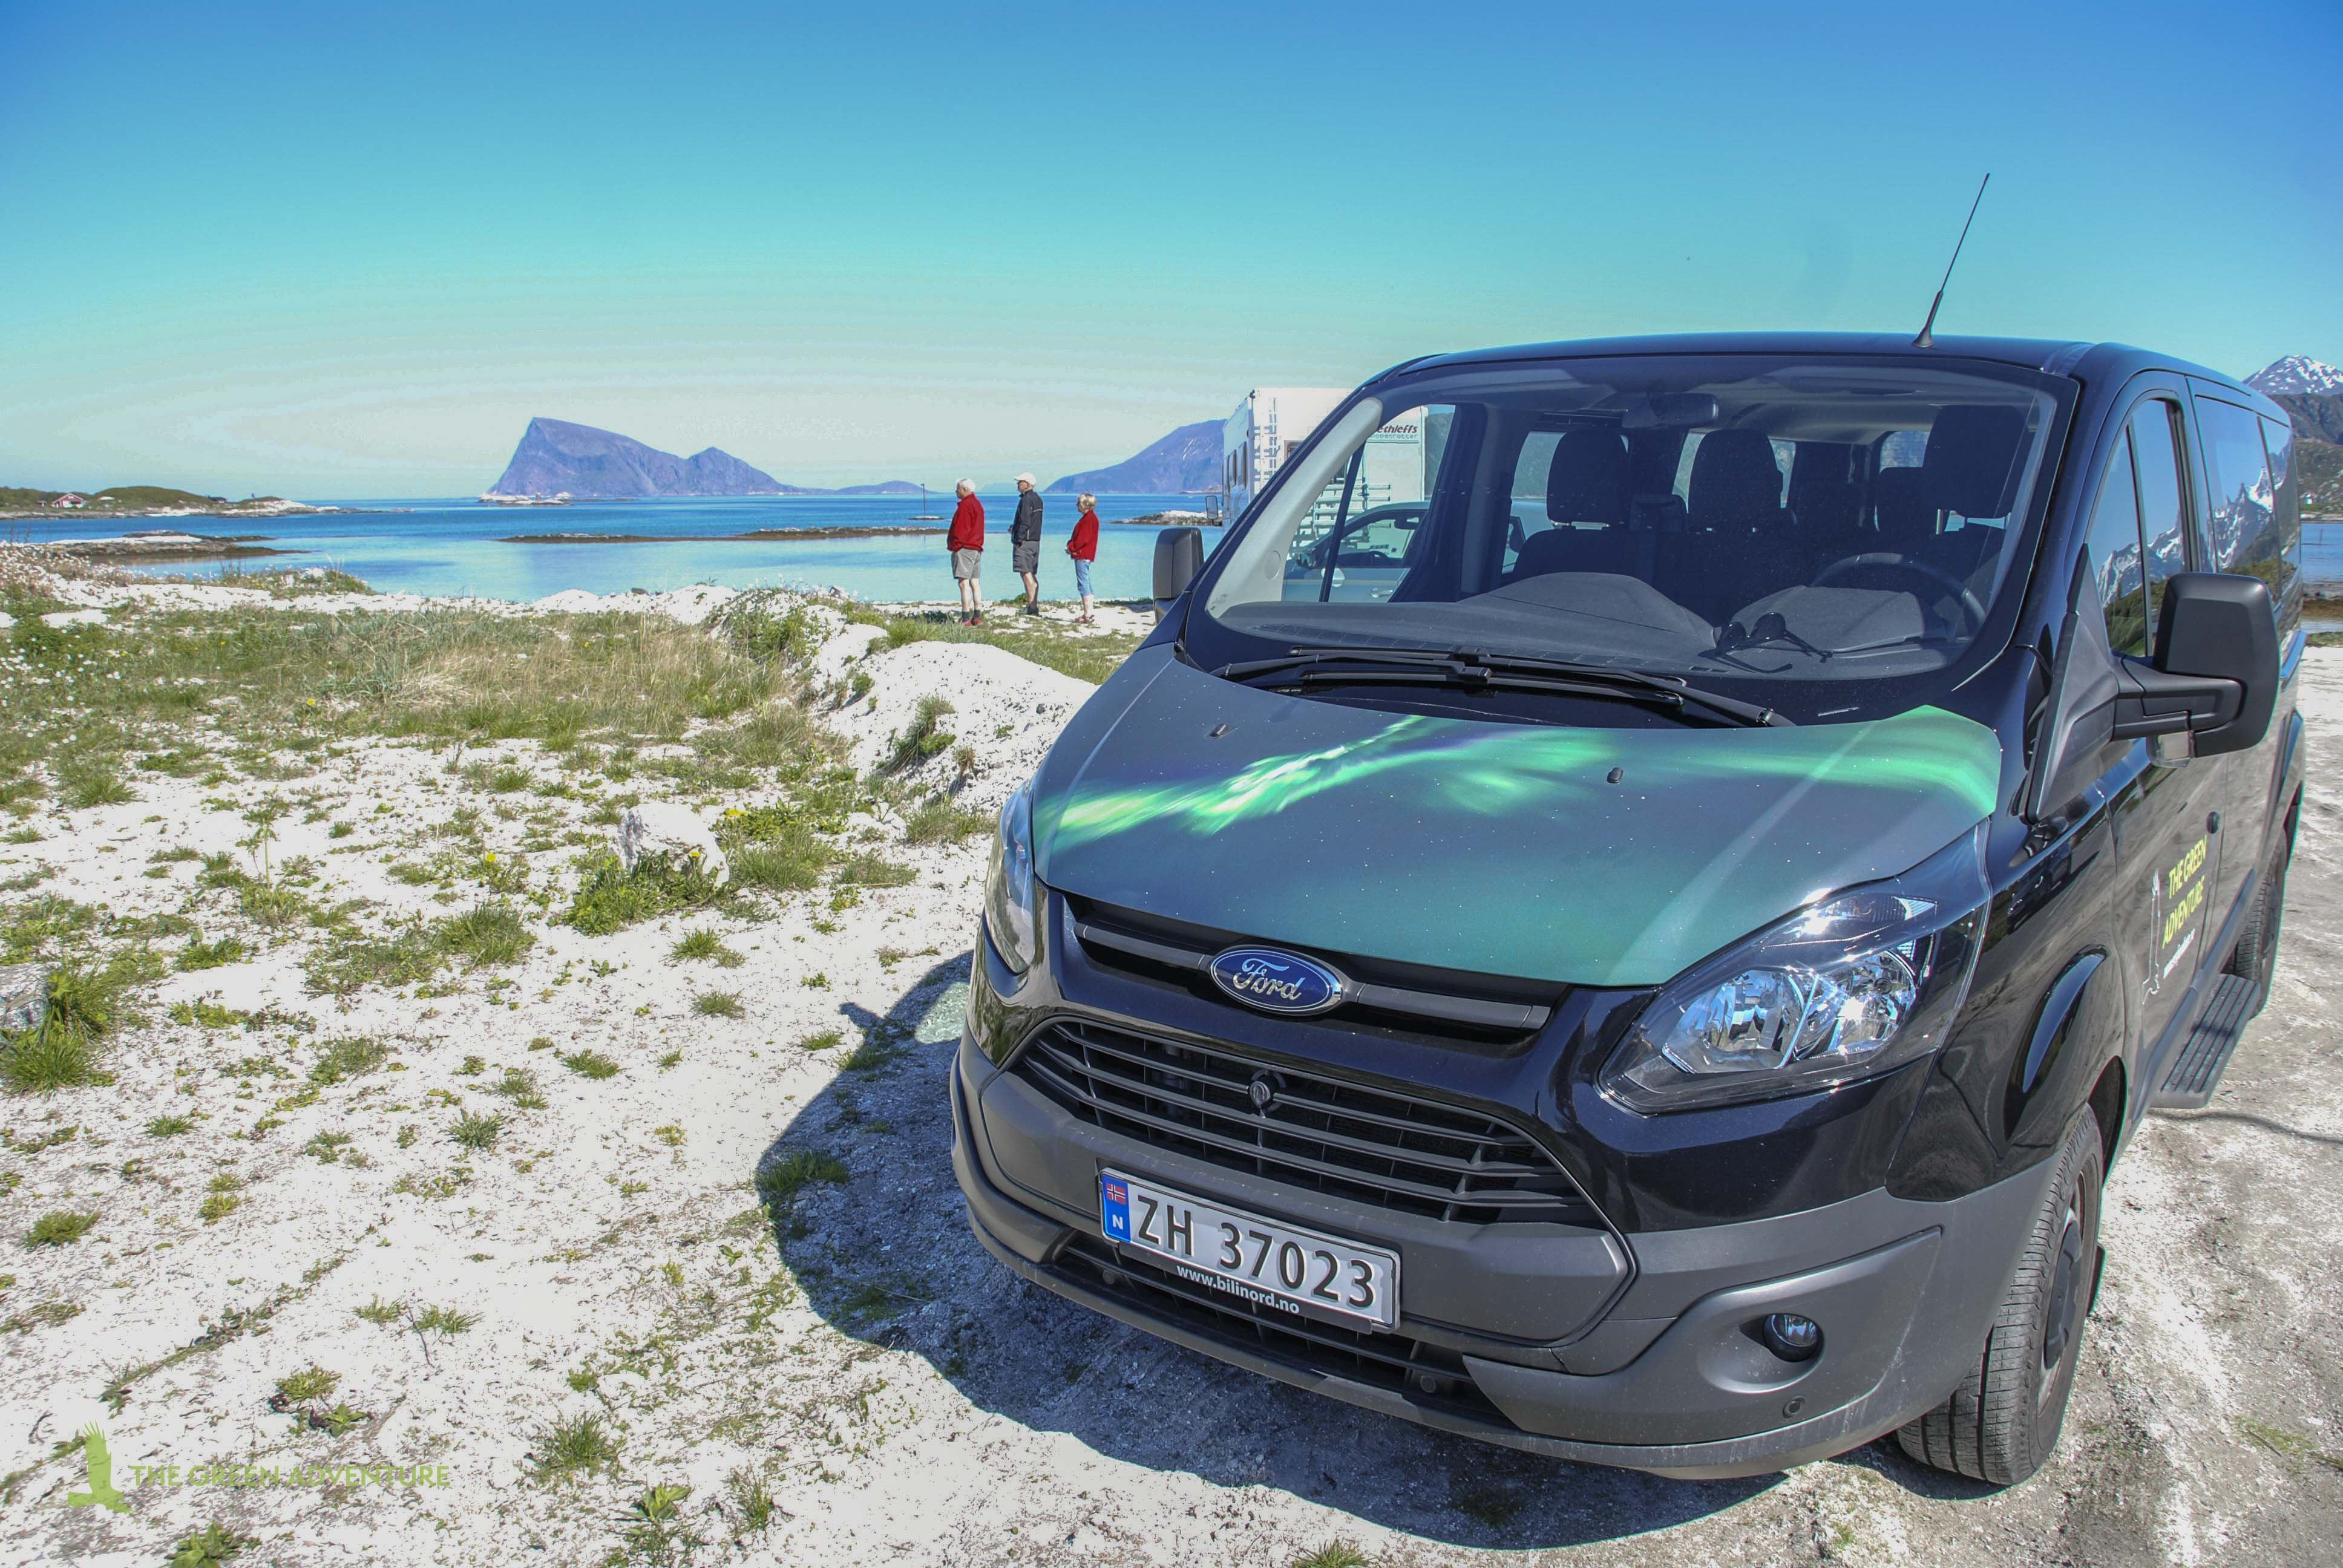 Discover the Fjords of Kvaløya by Car and Taste Local Food – The Green Adventure